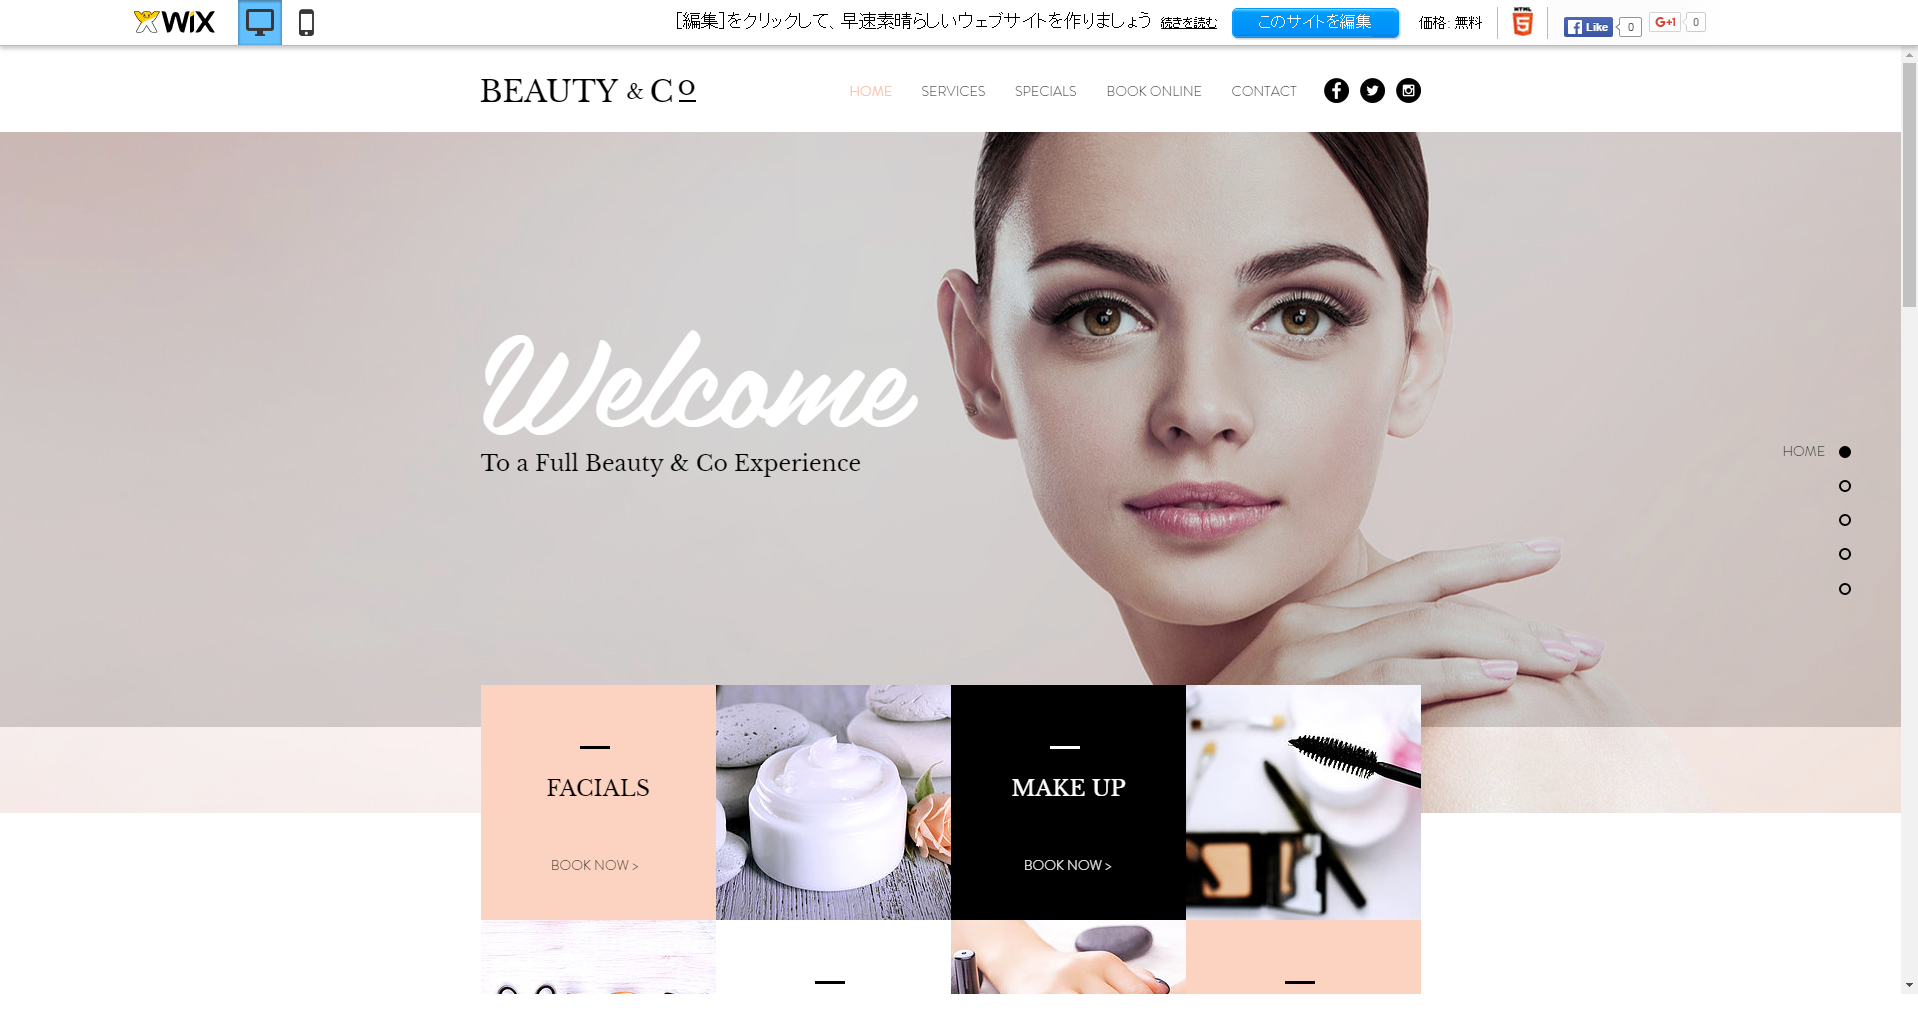 FireShot Capture 24 - Beauty Salon テンプレート I WIX_ - http___ja.wix.com_website-template_view_html_1752